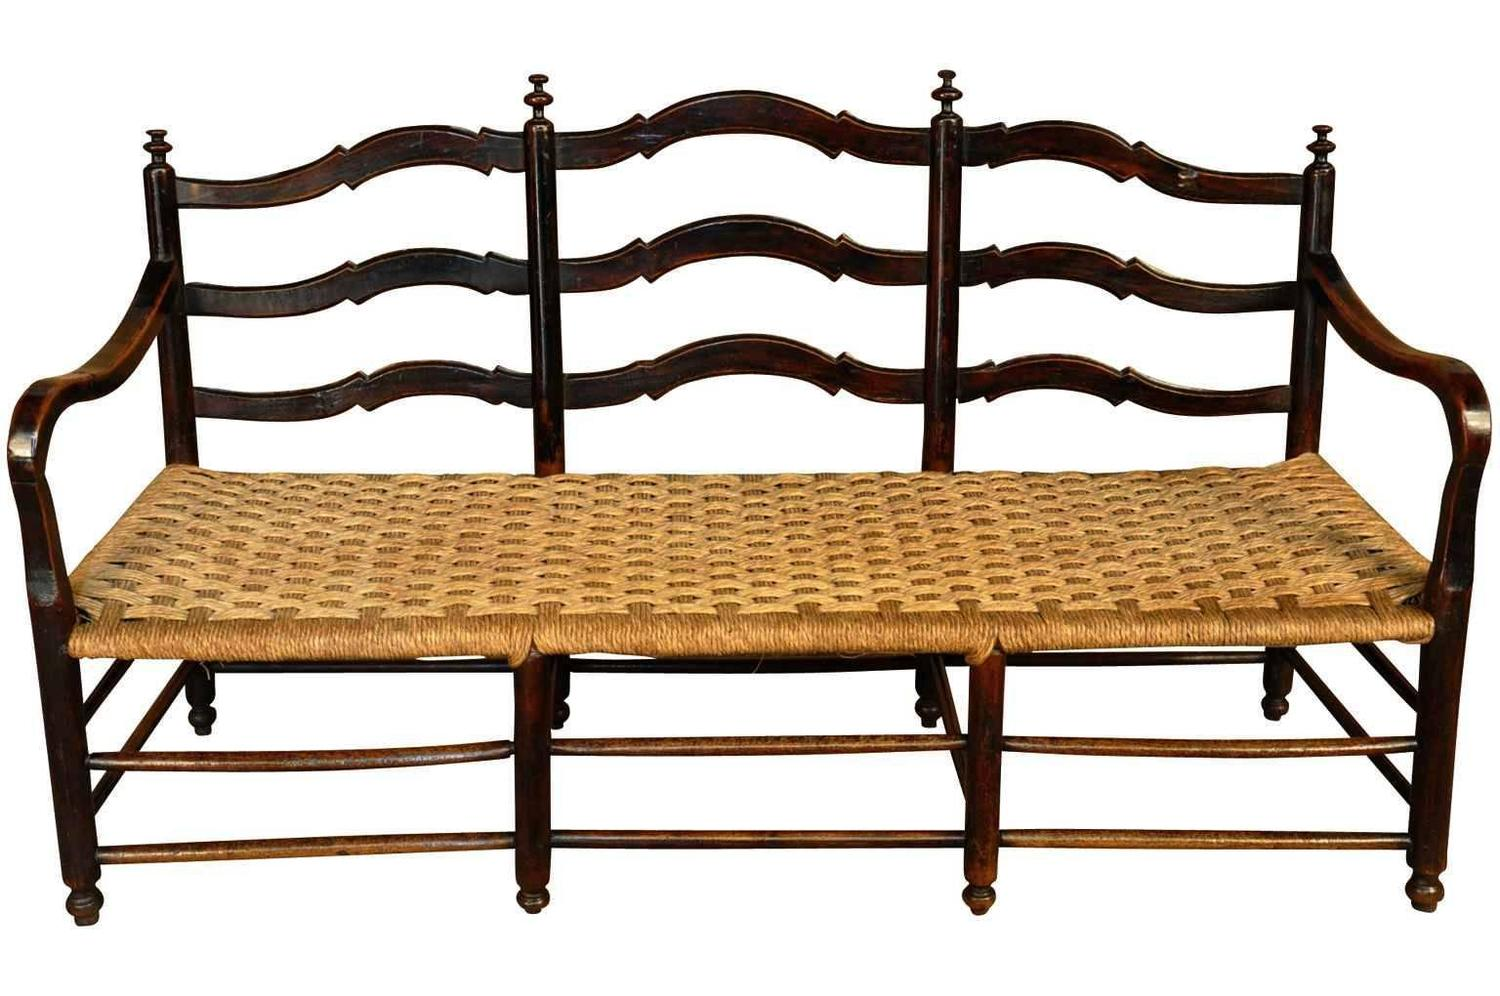 Italian Sofa And Pair Of Chairs Set In Walnut At 1stdibs